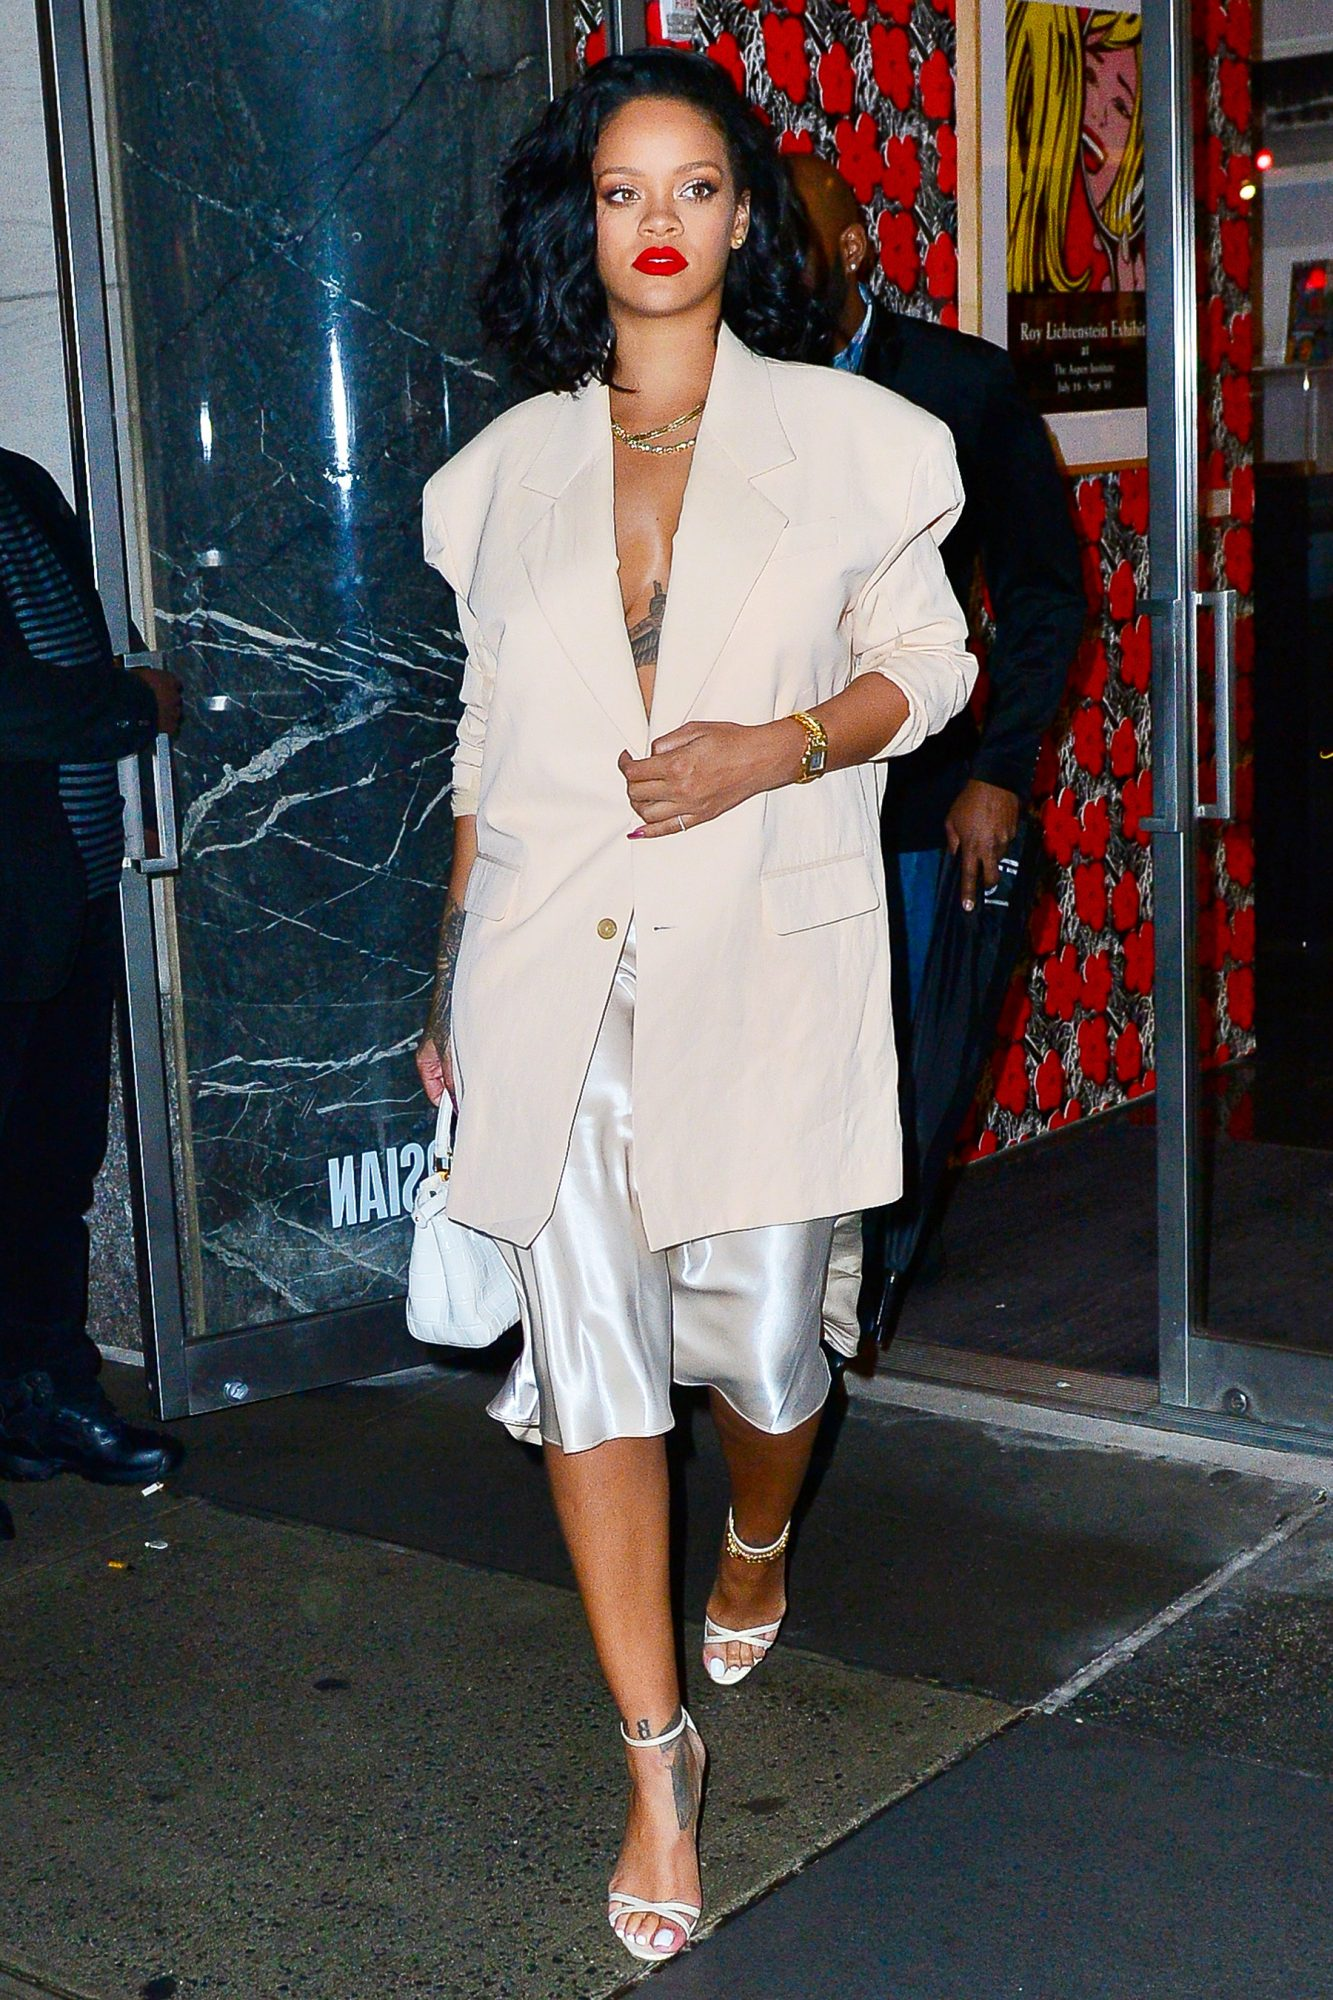 Rihanna looks striking as she  leaves dinner in NYC in silver gown under jacket